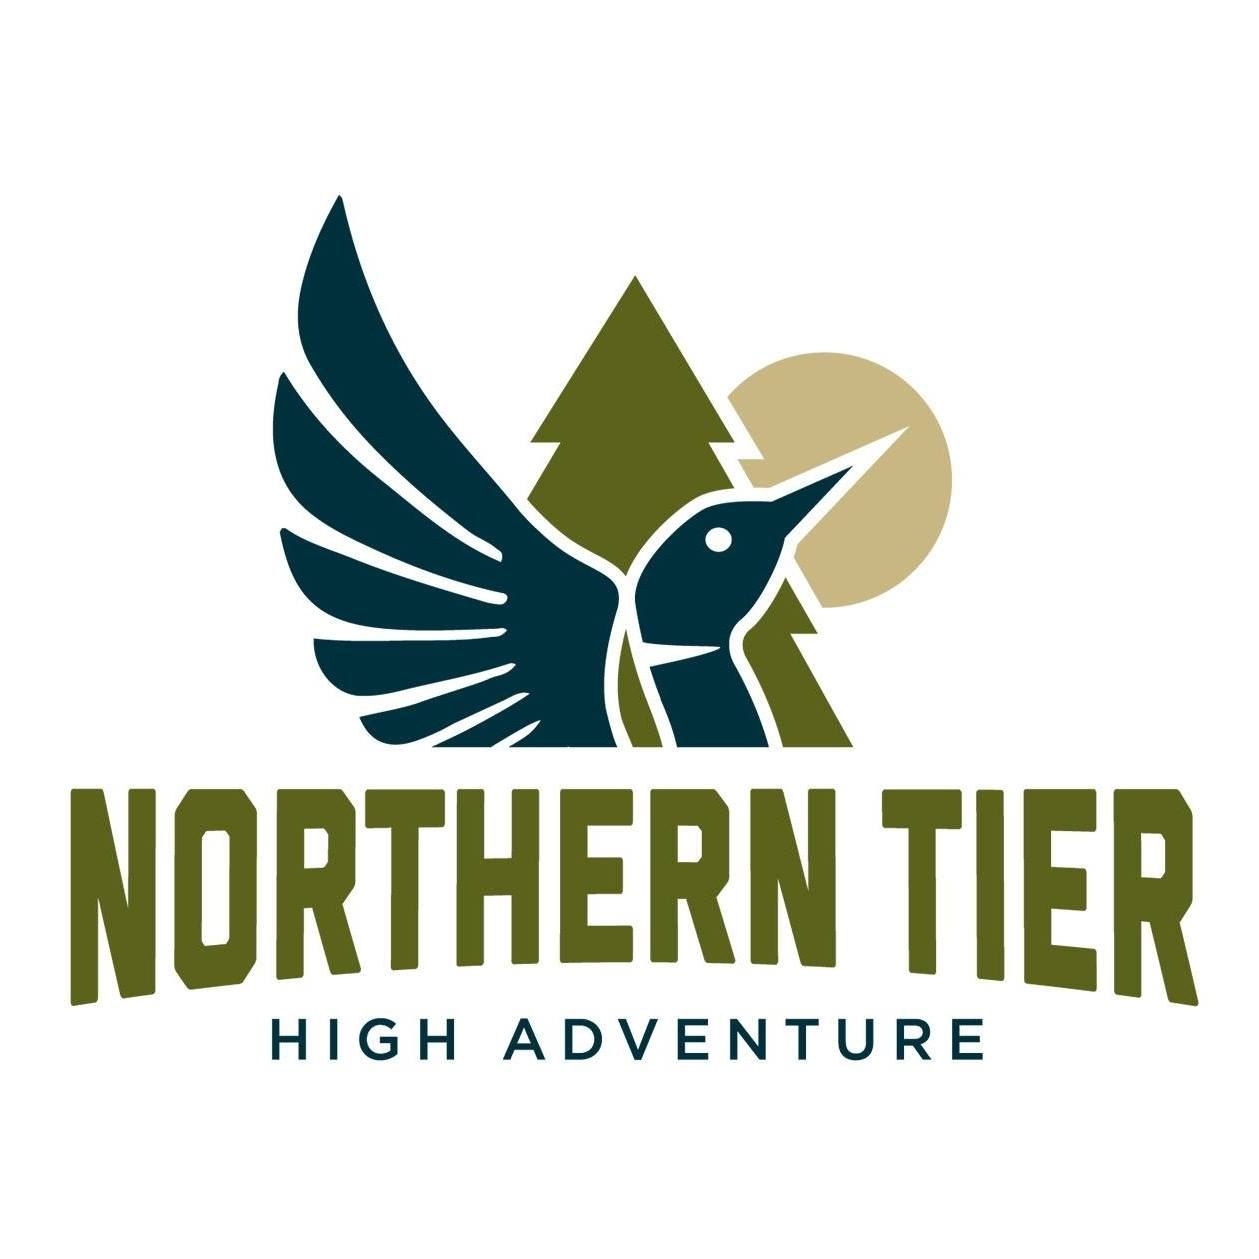 Northern Tier High Adventure